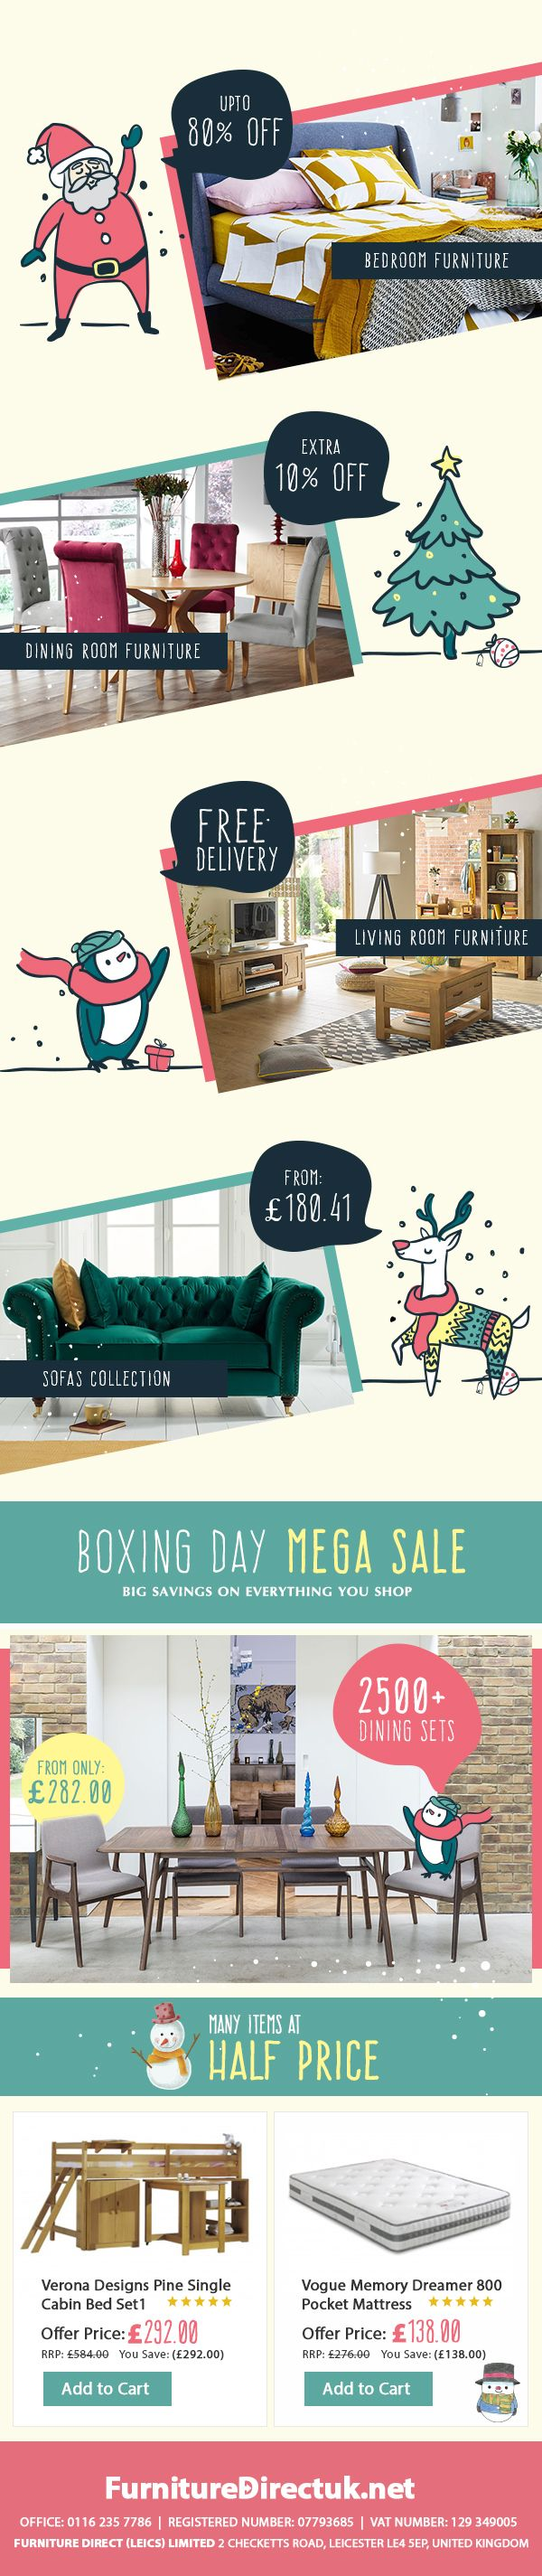 Boxing Day Furniture Sale 2018 Starts From 22th December Big